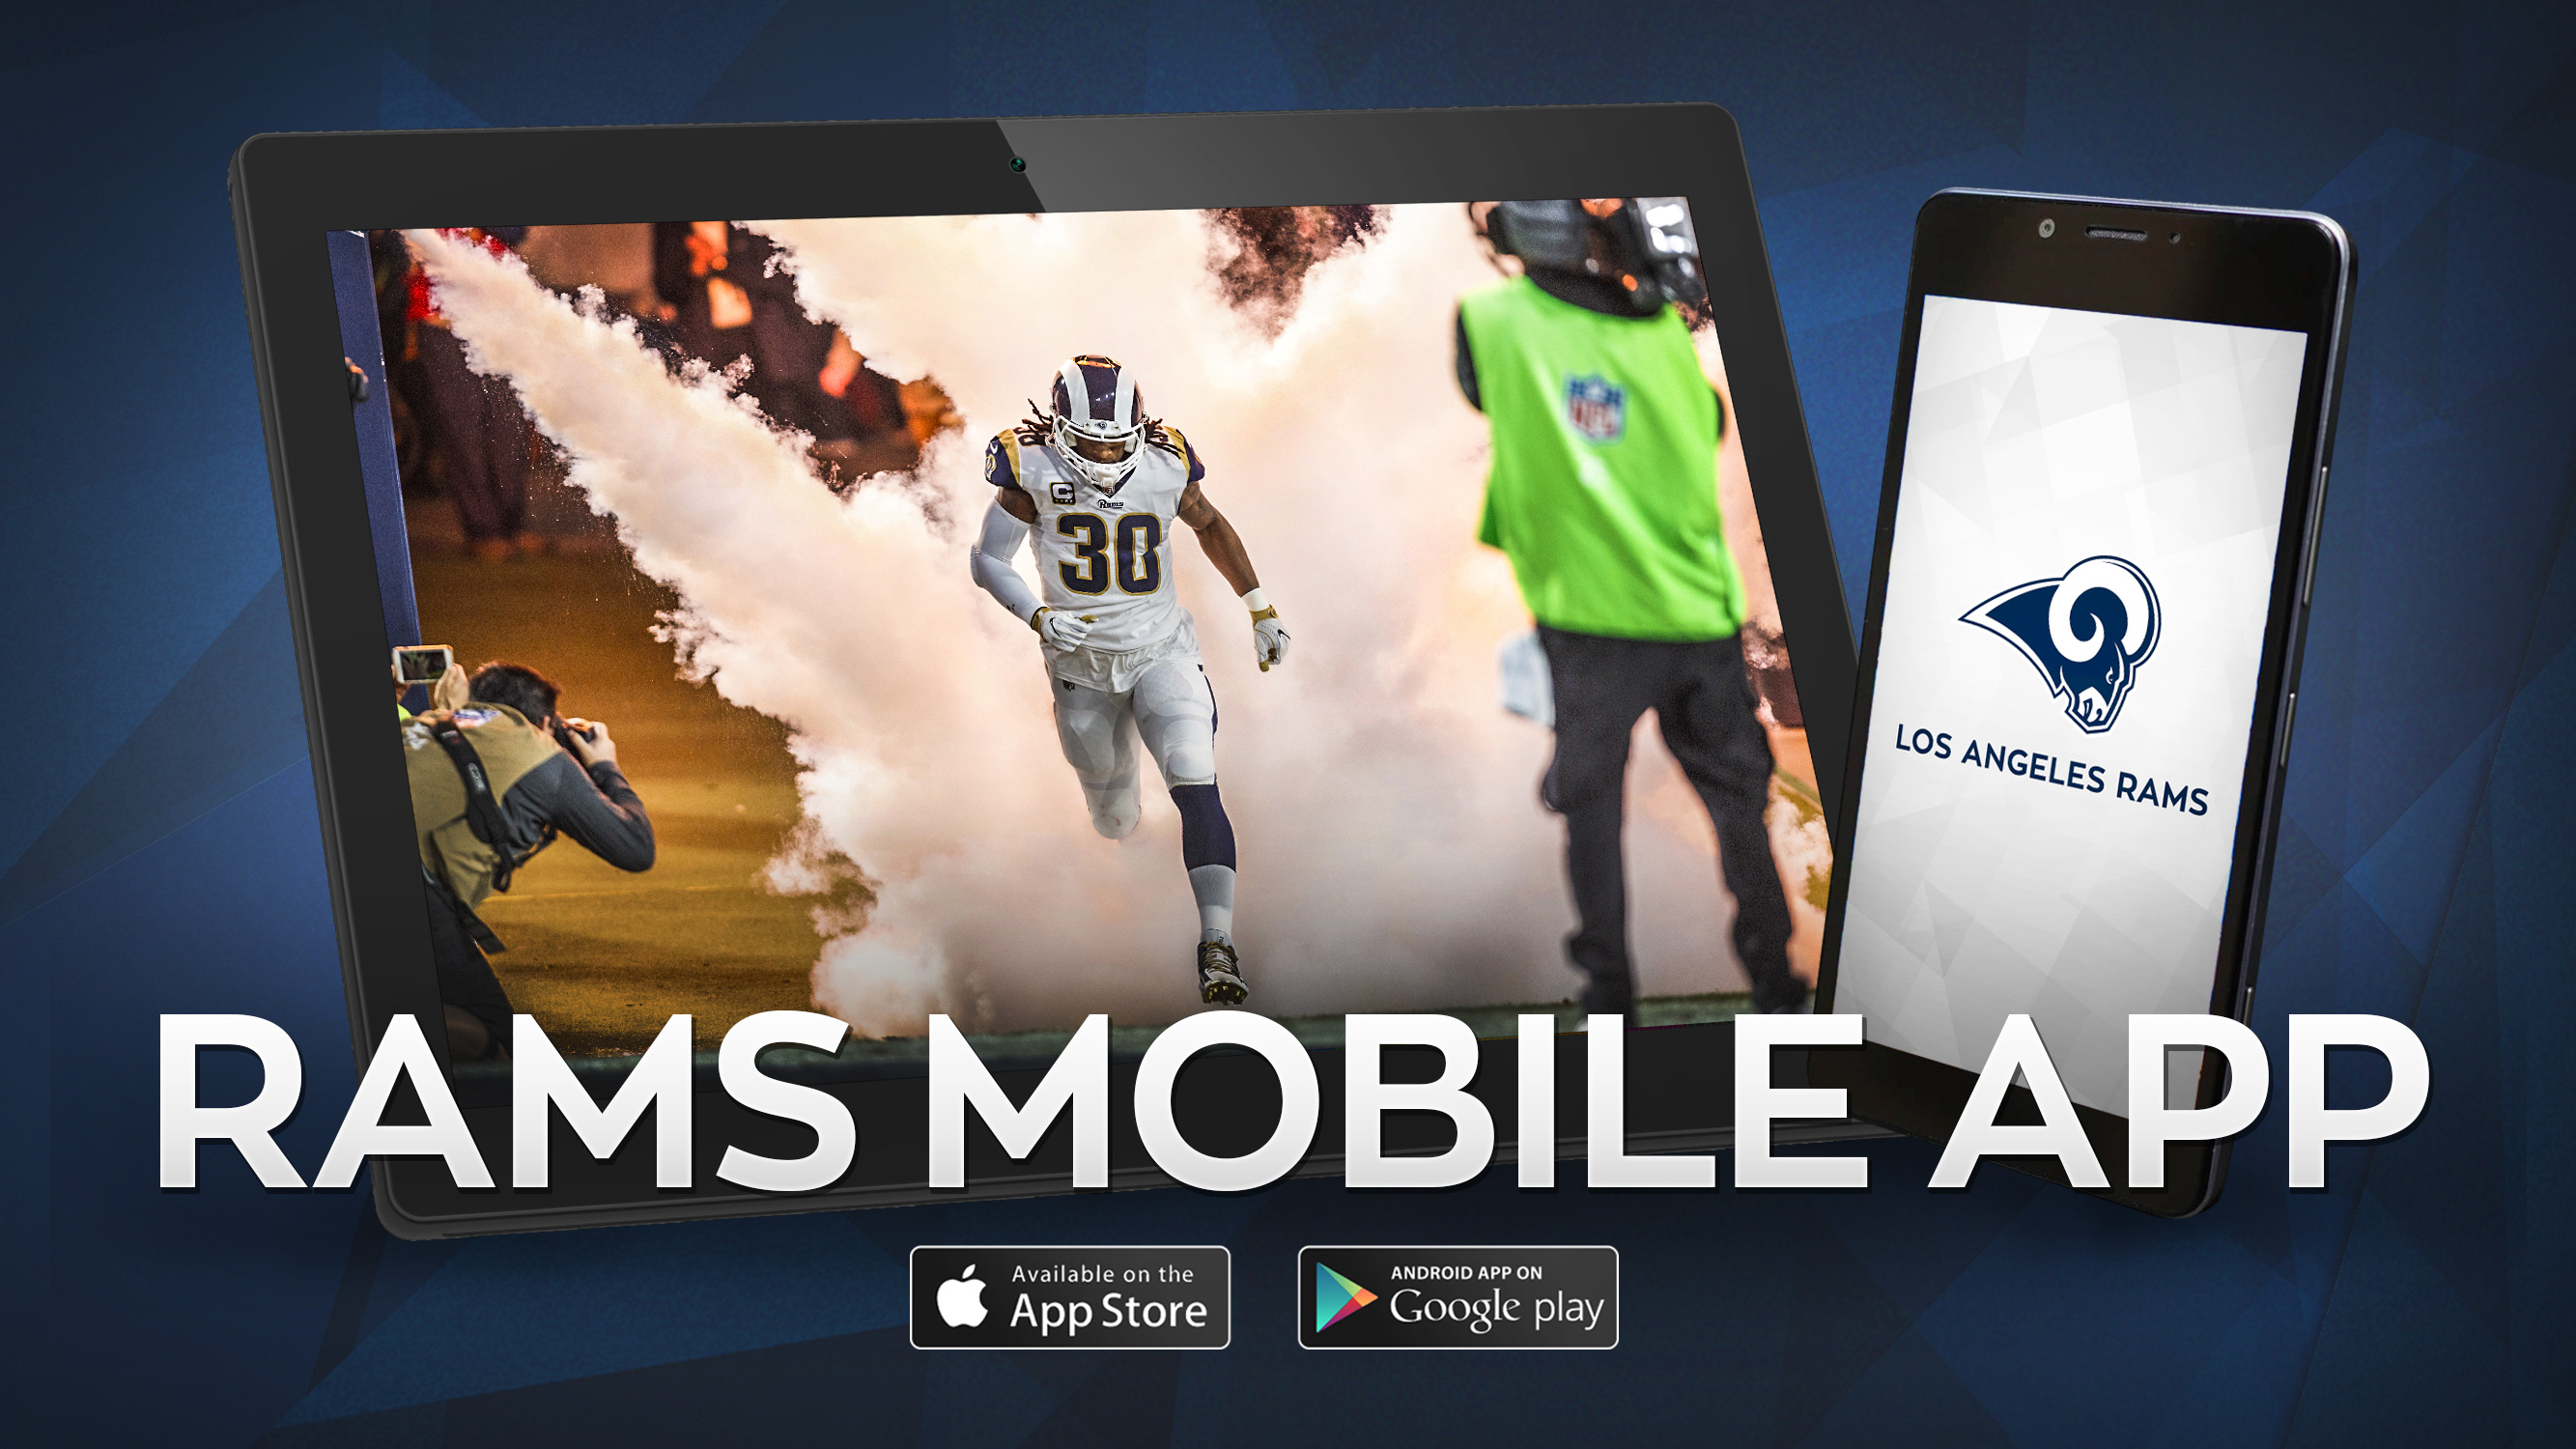 best service 9d4cd 4c723 Los Angeles Rams Home | Los Angeles Rams - therams.com